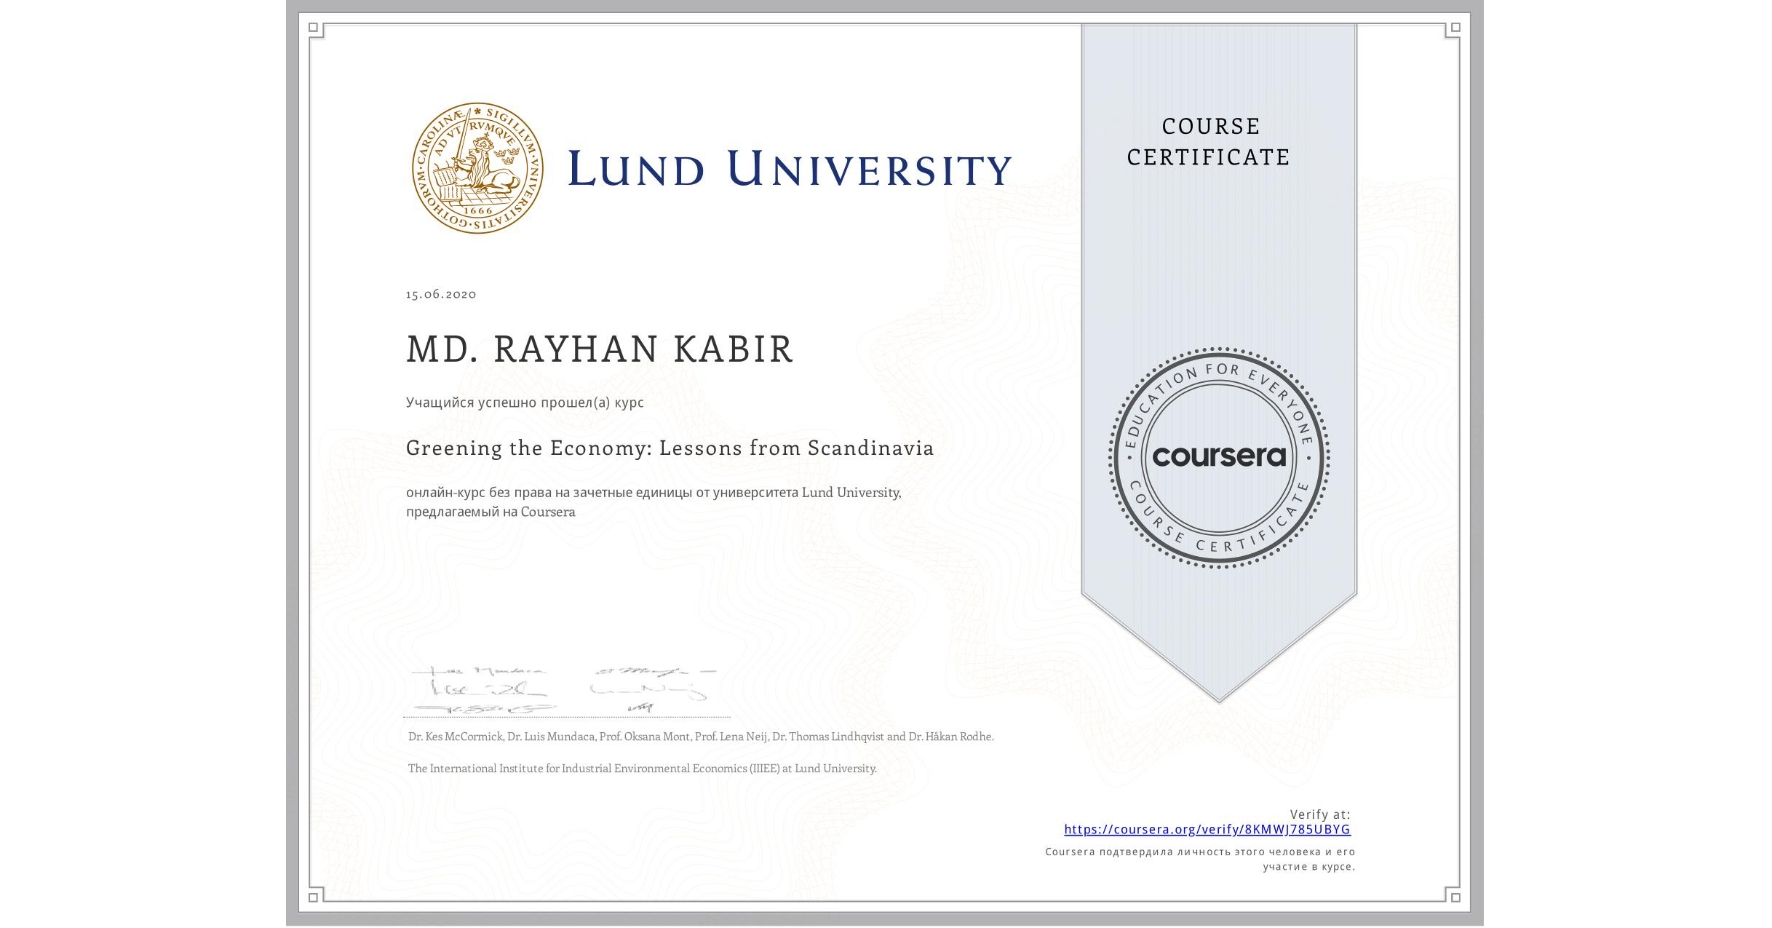 View certificate for MD. RAYHAN  KABIR, Greening the Economy: Lessons from Scandinavia, an online non-credit course authorized by Lund University and offered through Coursera